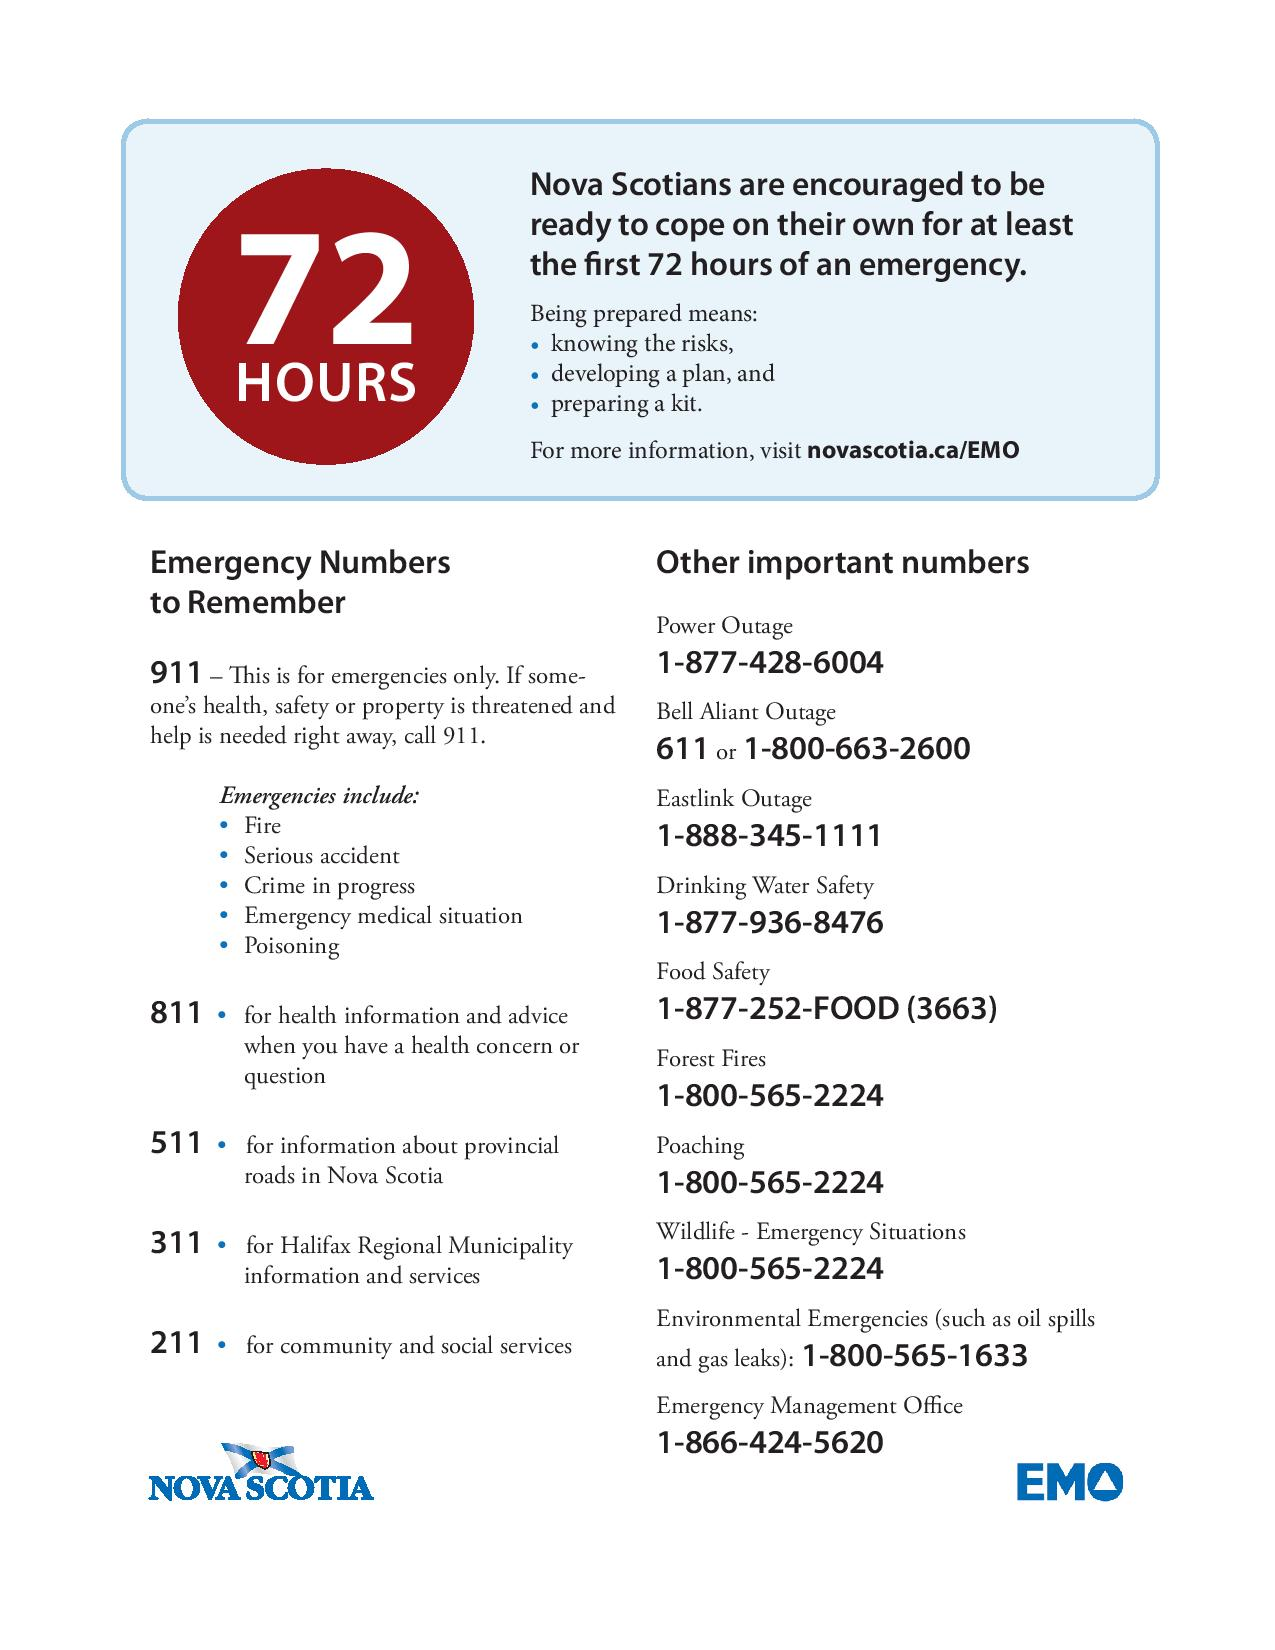 Emergency numbers to remember July 2014